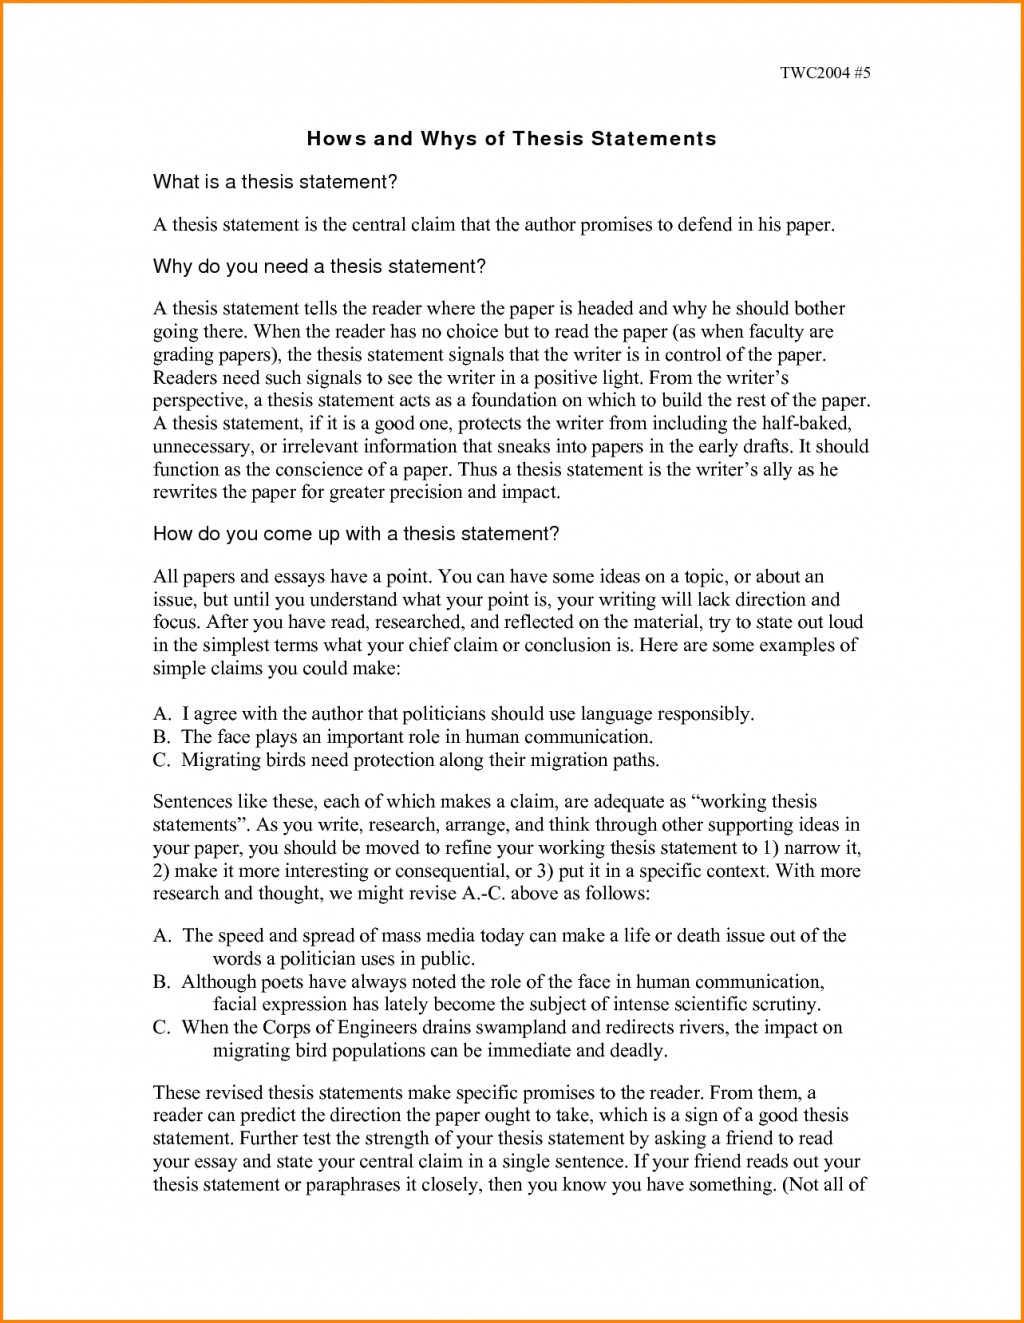 003 Argumentative Research Paper Thesis Statement Examples For Essays Stunning Large